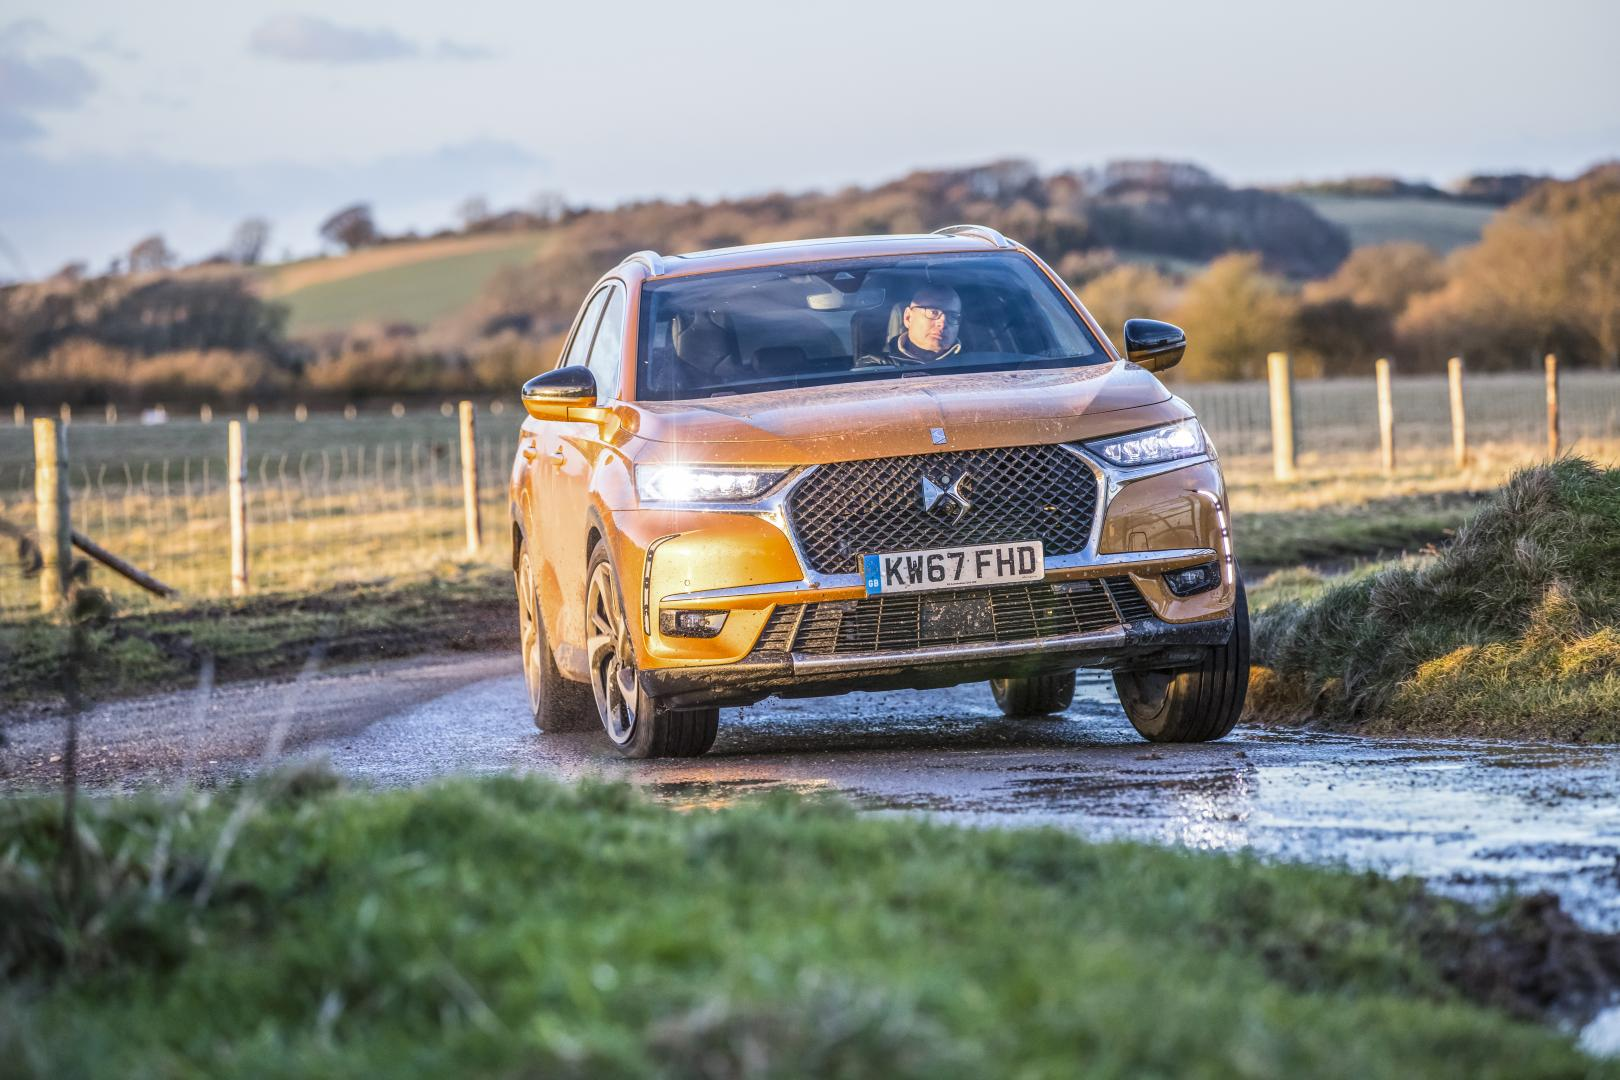 DS 7 Crossback (2018)